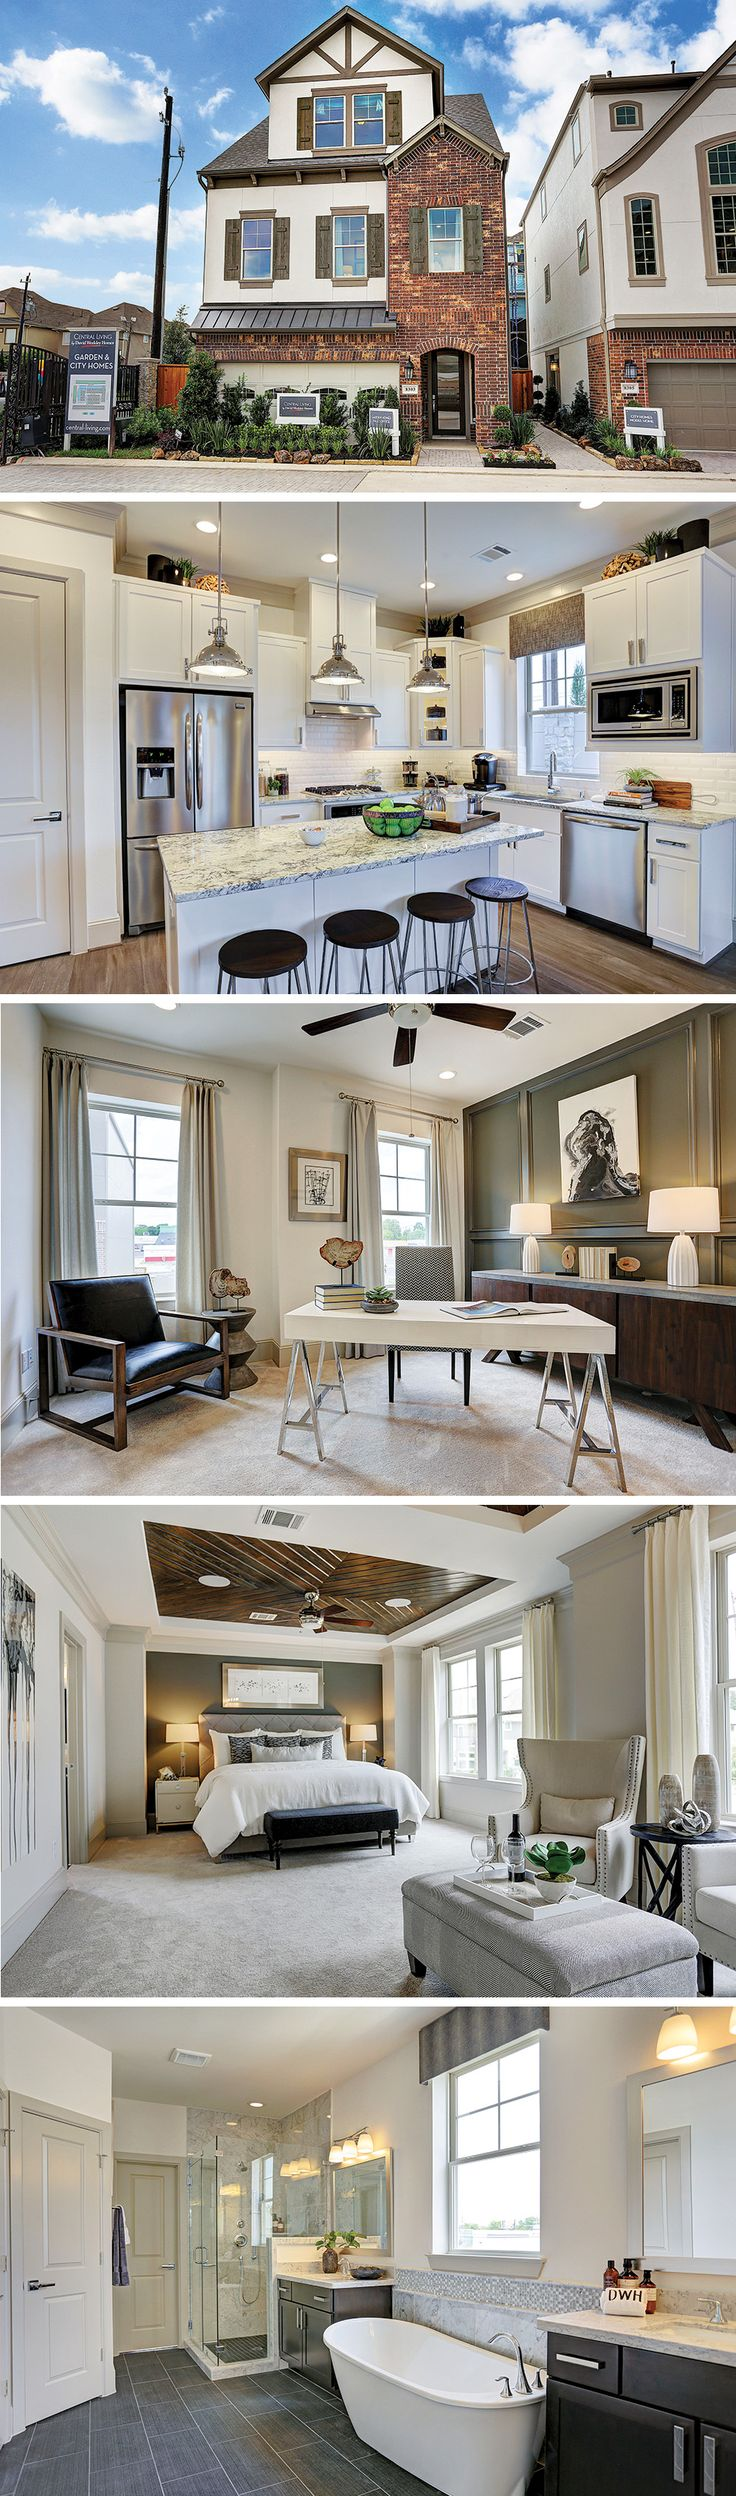 The Chervais by David Weekley Homes in Village at Spring Branch is a 4 bedroom, 3 bathroom home that features an open kitchen and family room layout, a 2 car garage and beautiful tray ceilings. The luxurious owners bath features a beautiful soaking tub with two large walk-in closets.